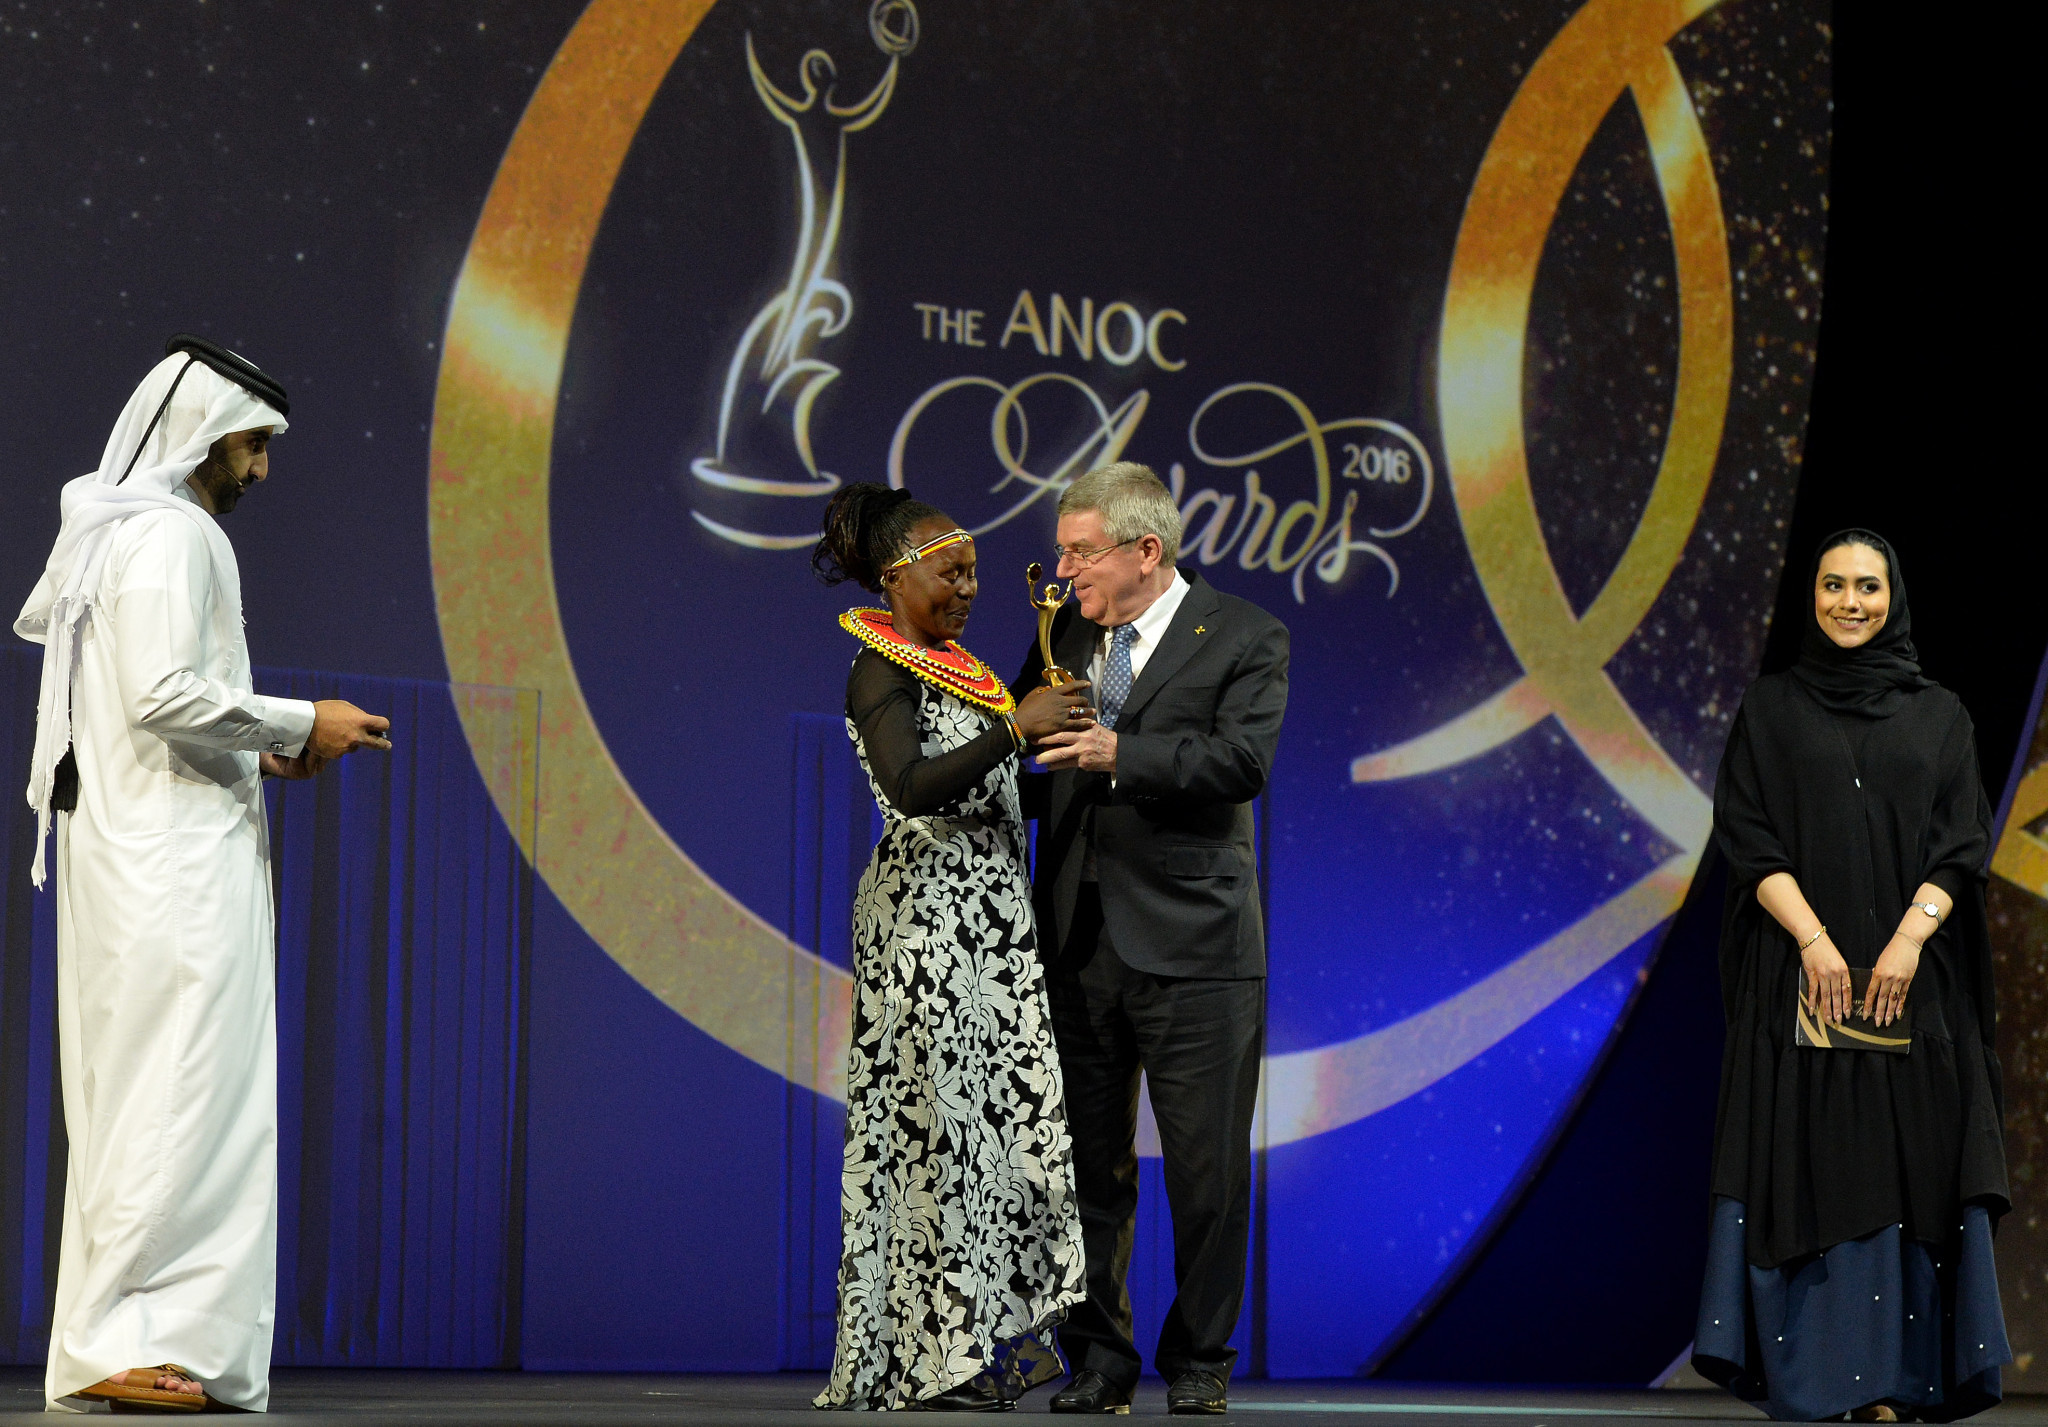 Tegla Loroupe, left, pictured with IOC President Thomas Bach during the 2016 ANOC Gala Awards in Doha ©Getty Images